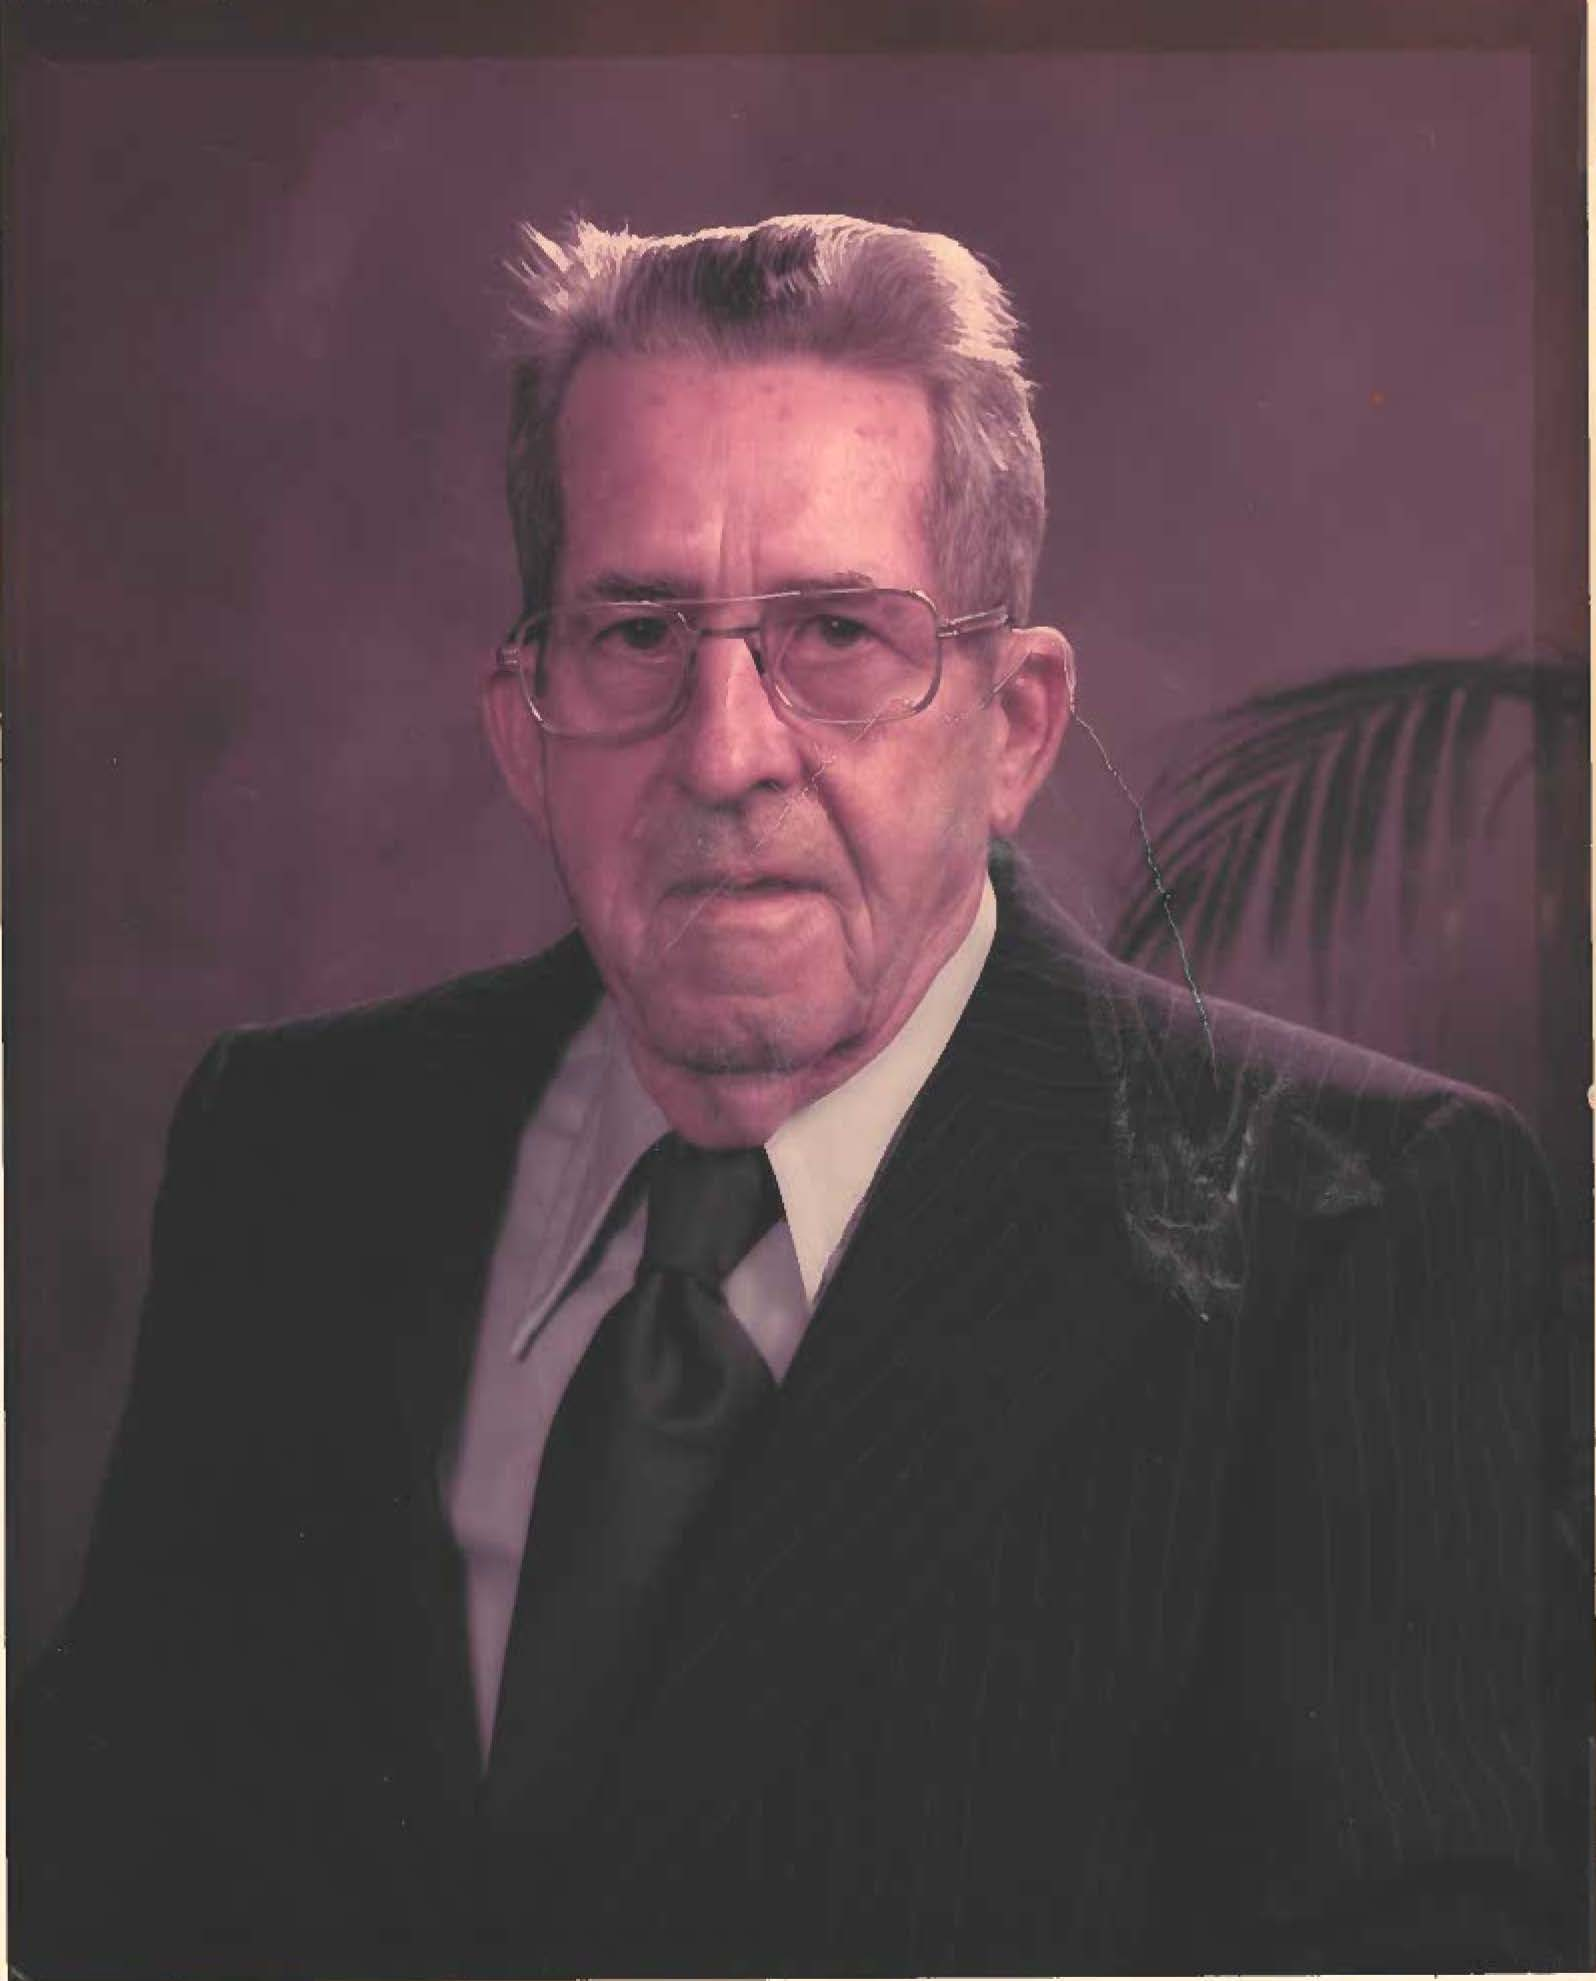 Mayor Tom Pryor